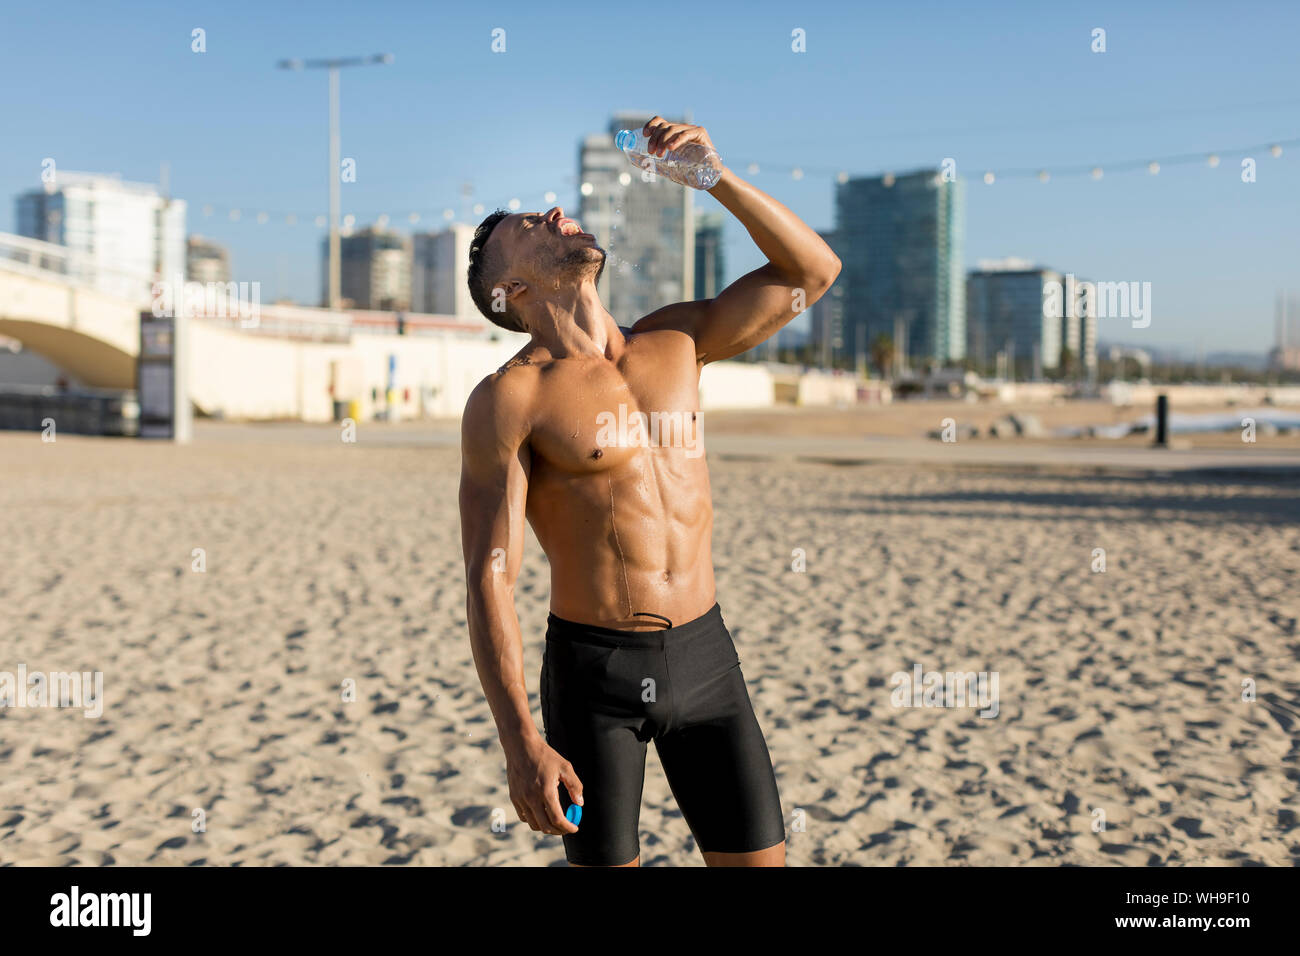 Barechested man drinking water after workout on the beach Stock Photo